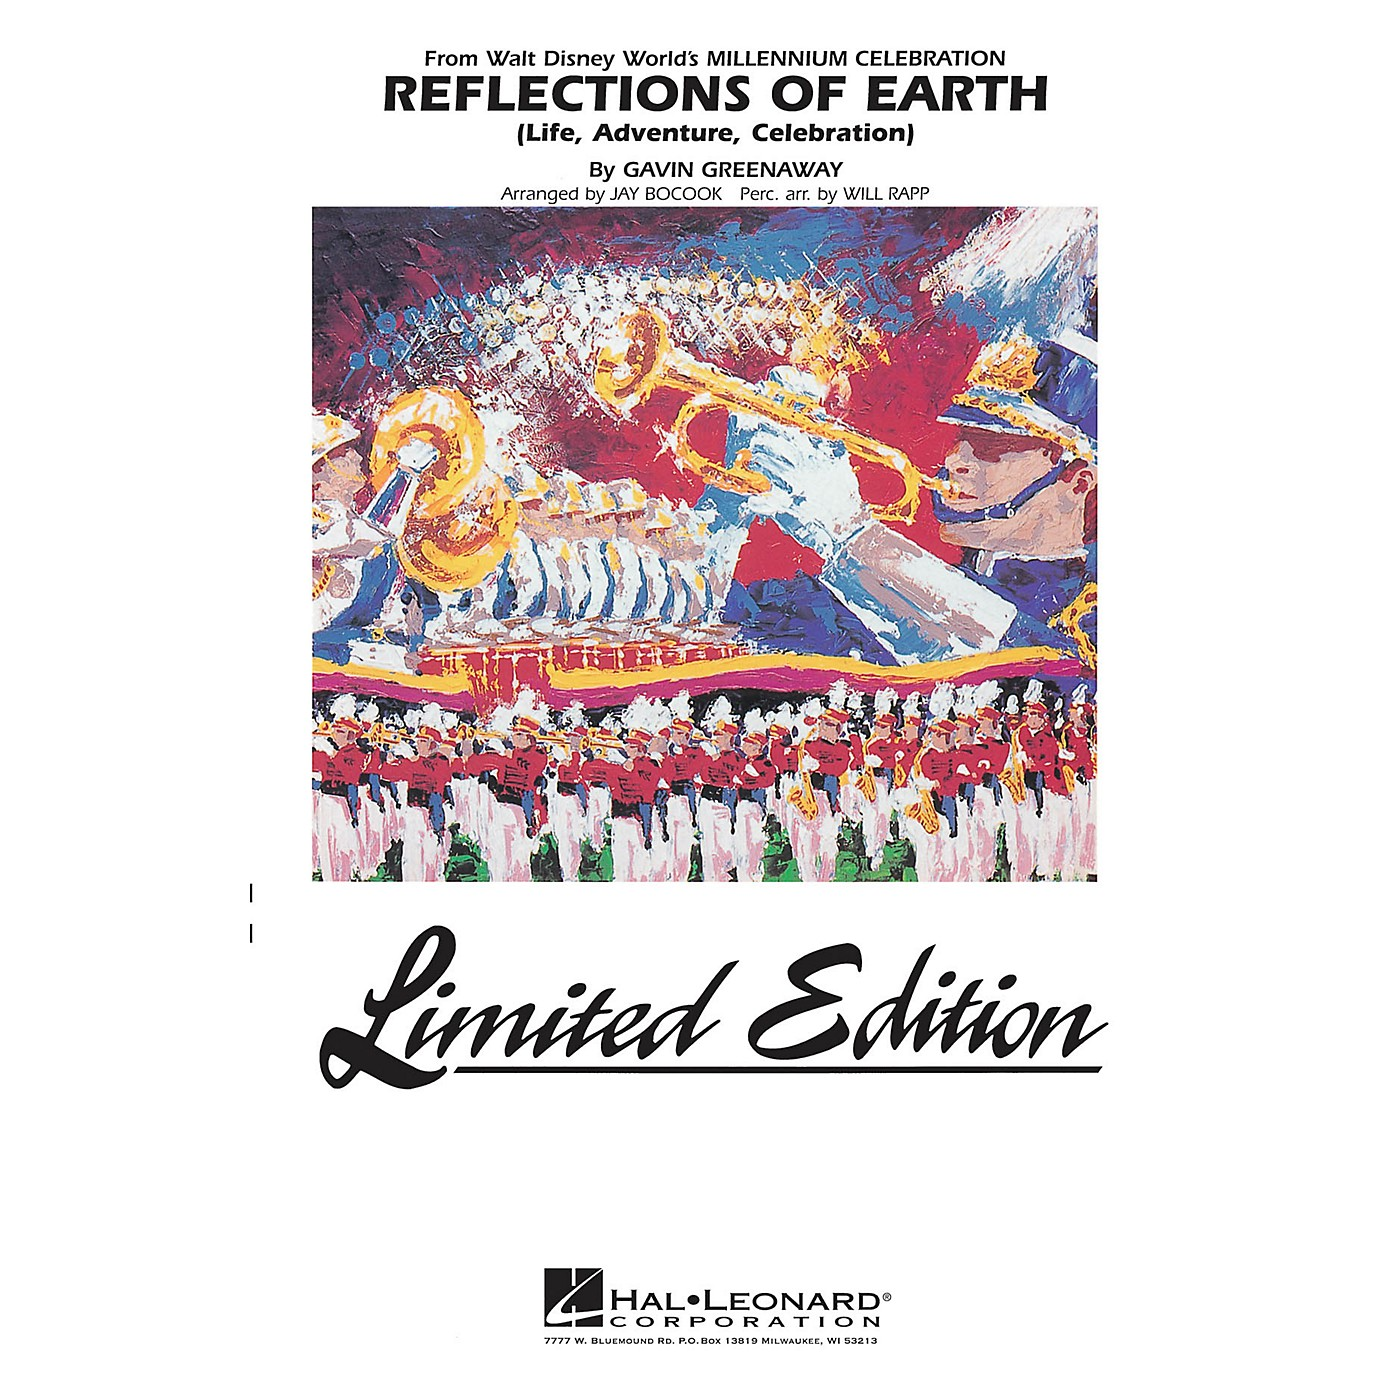 Hal Leonard Reflections of Earth Marching Band Level 5 Arranged by Jay Bocook thumbnail